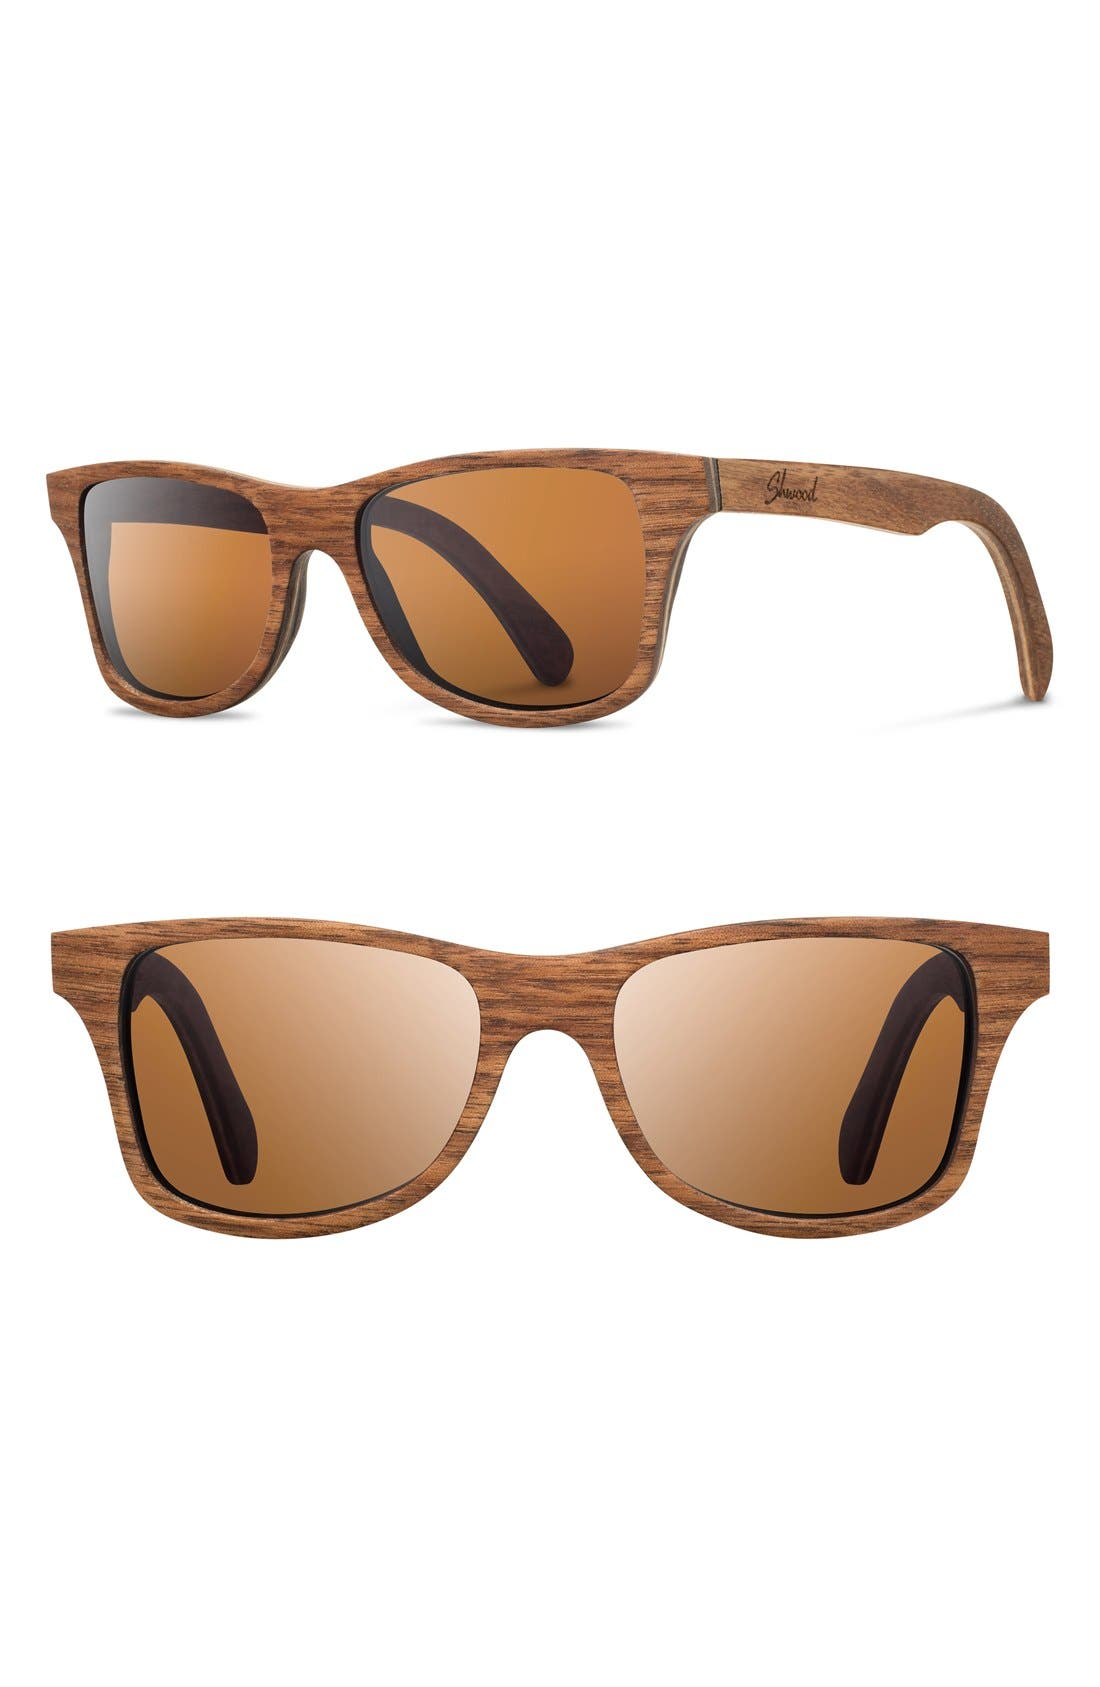 Alternate Image 1 Selected - Shwood 'Canby' 54mm Polarized Wood Sunglasses